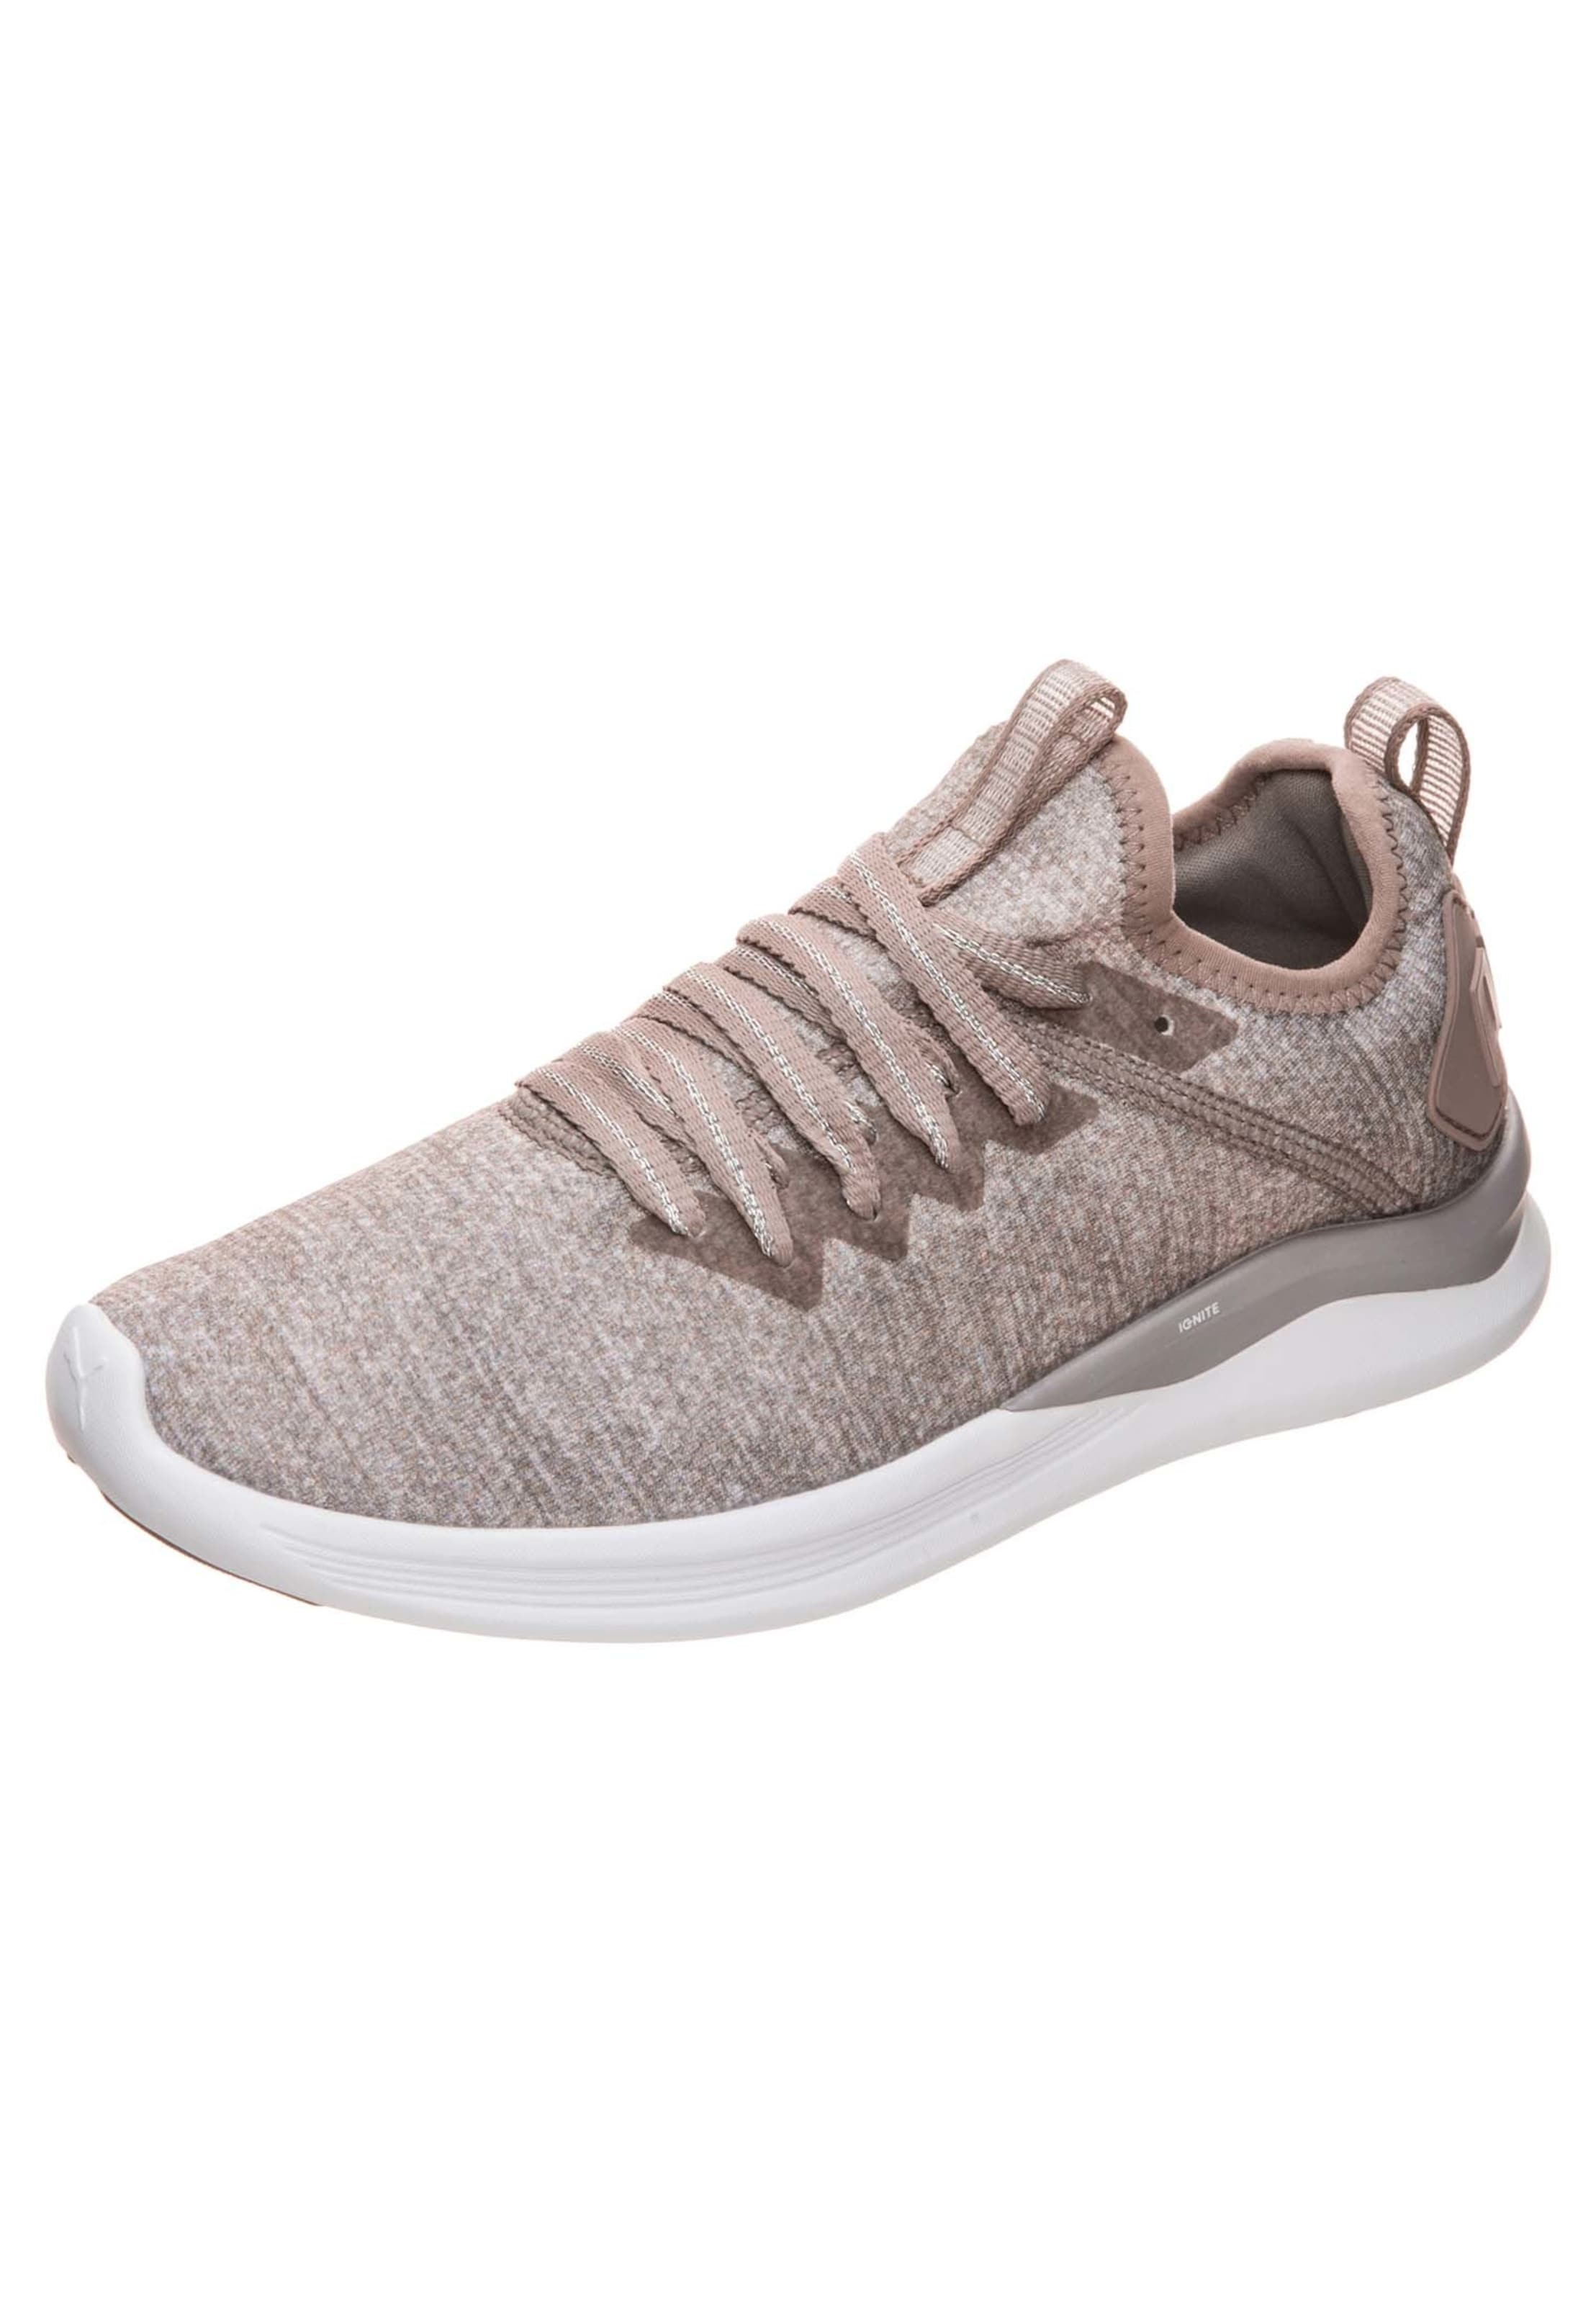 PUMA | Turnschuhe Flash Ignite Flash Turnschuhe evoKNIT EP 593452